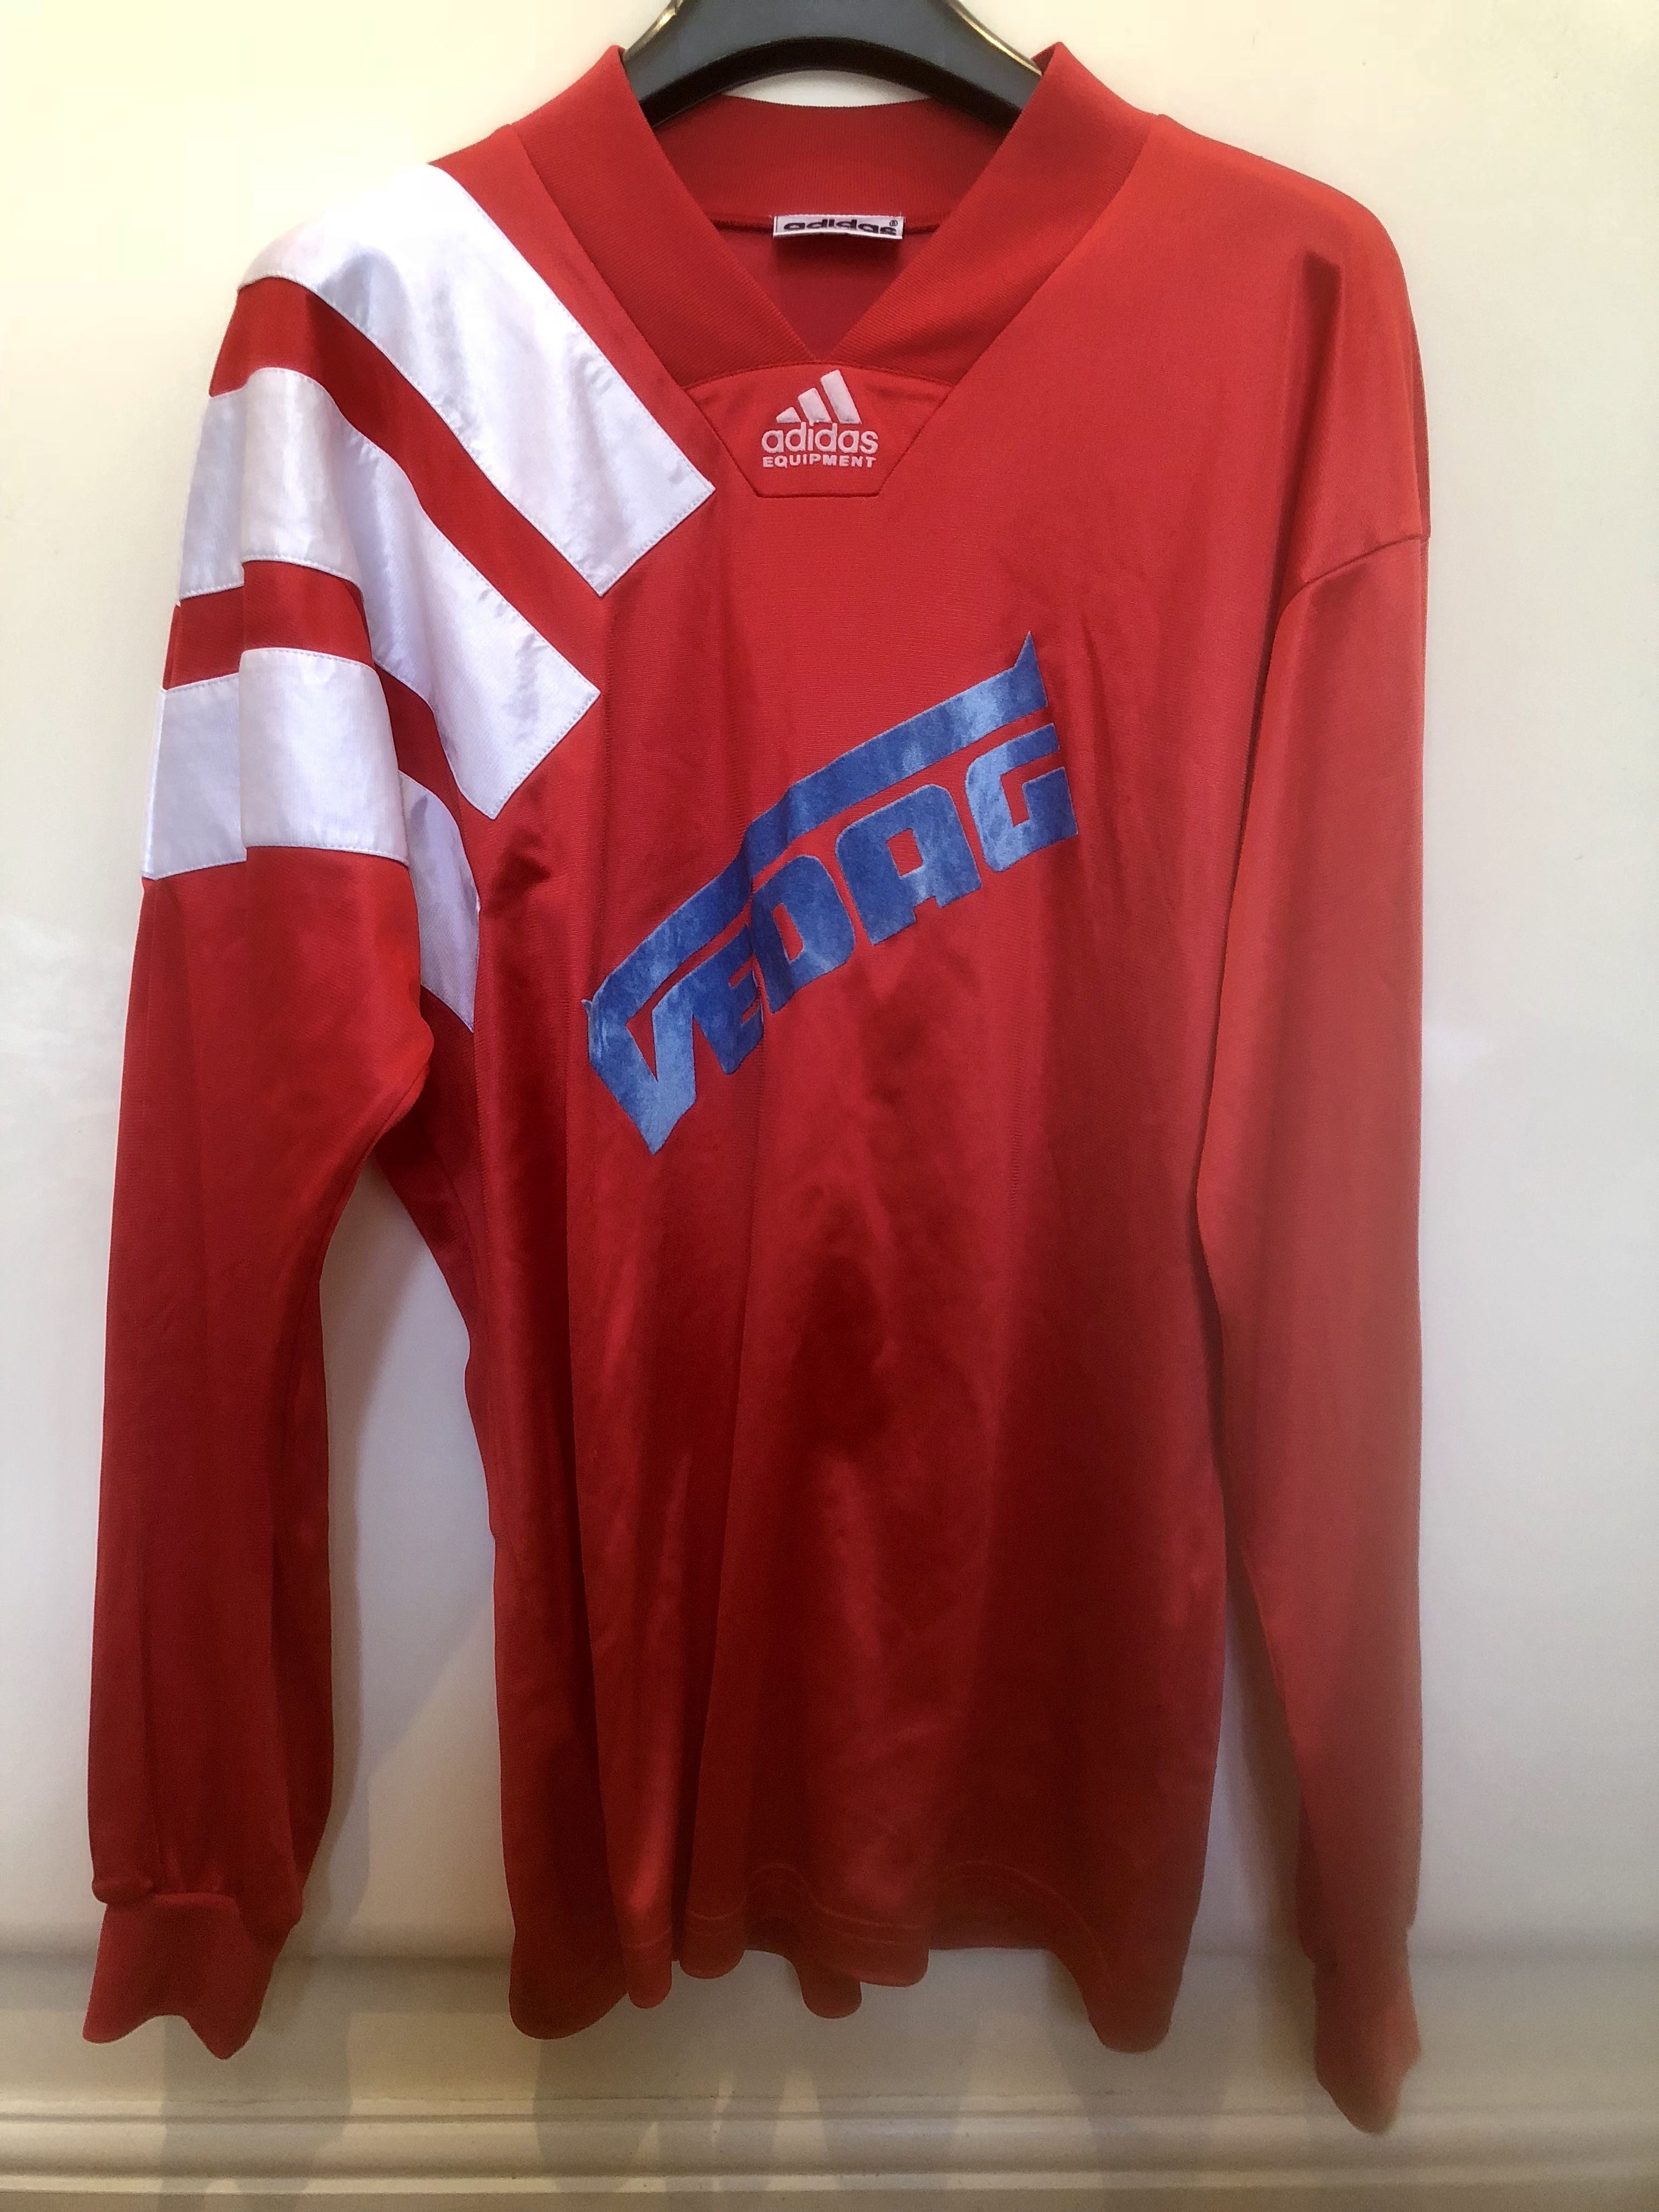 Pin by Retro Rewind on Vintage and Classic Football Shirts ... 8e2da72ef